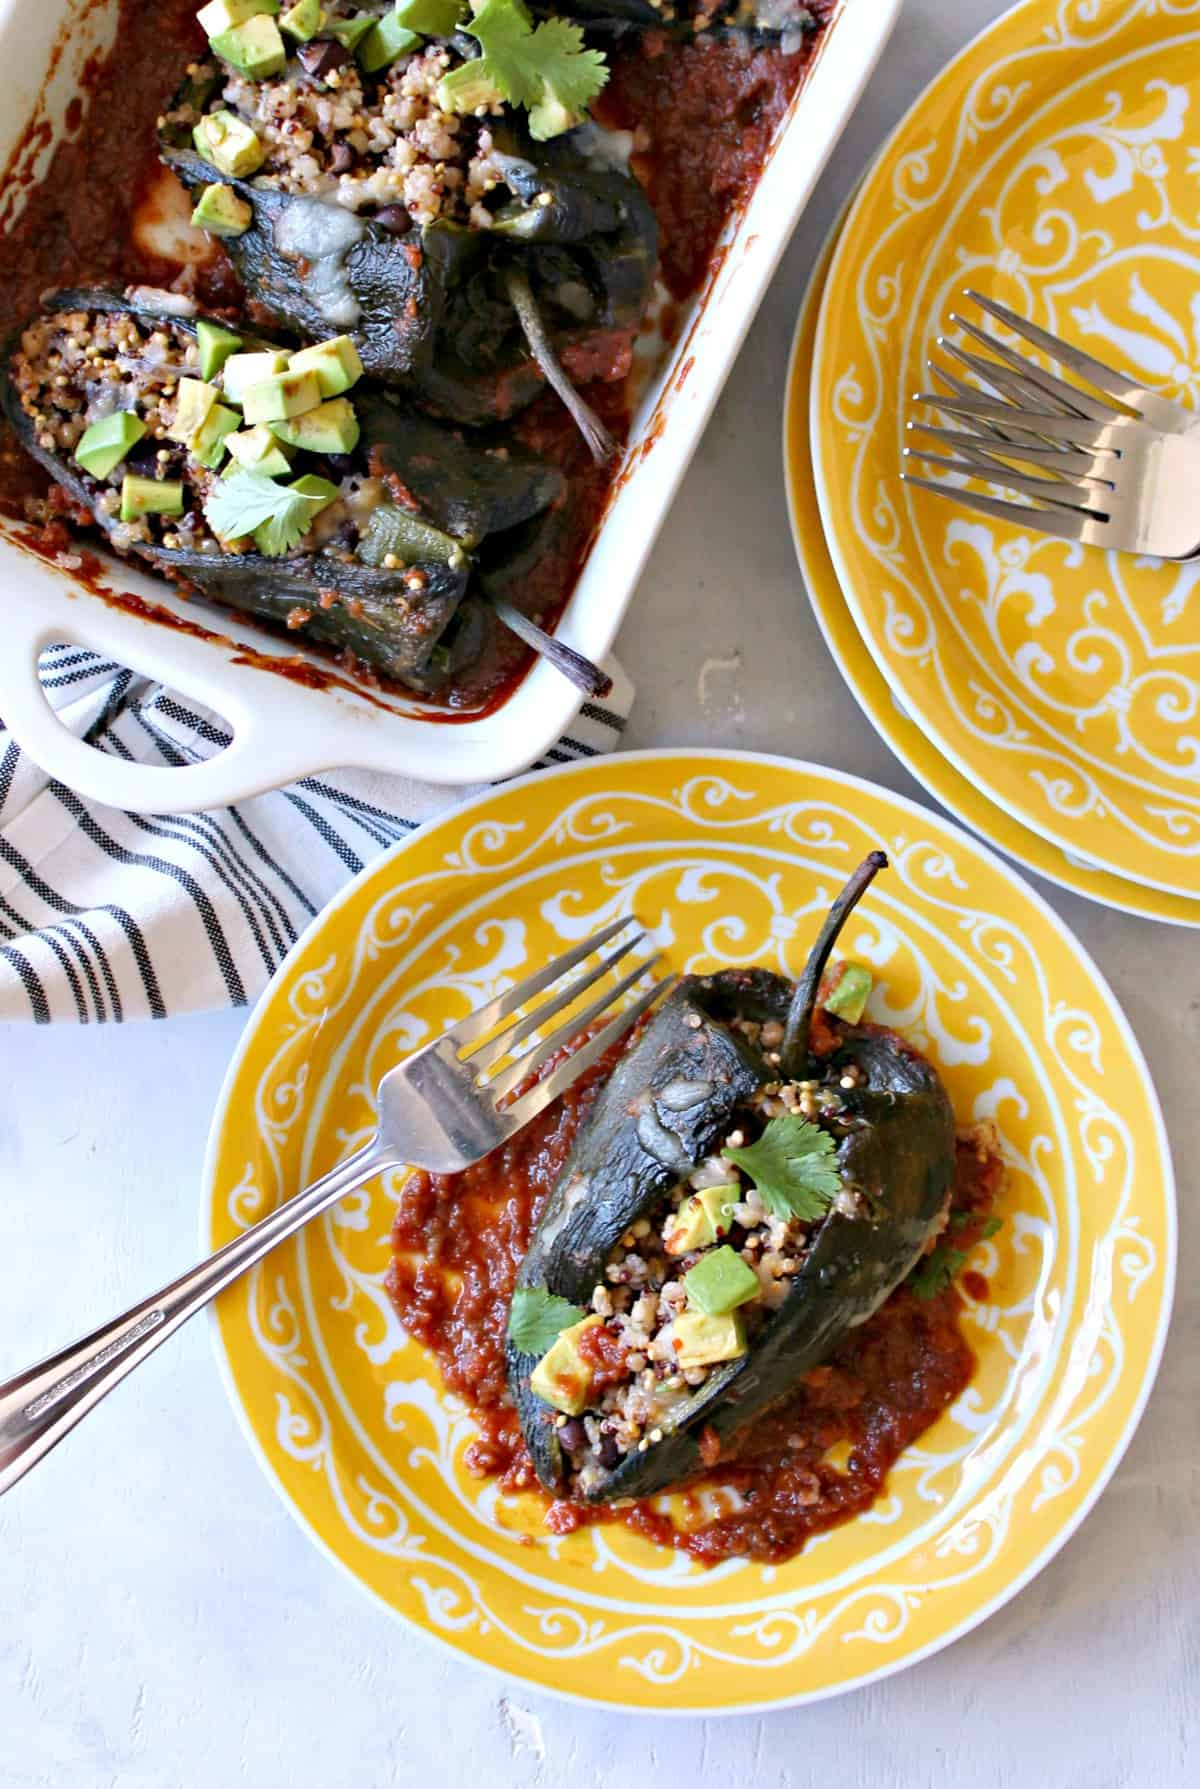 baked chili rellenos are poblano peppers stuffed with hearty grains, cheese, and baked in a spicy seasoned sauce